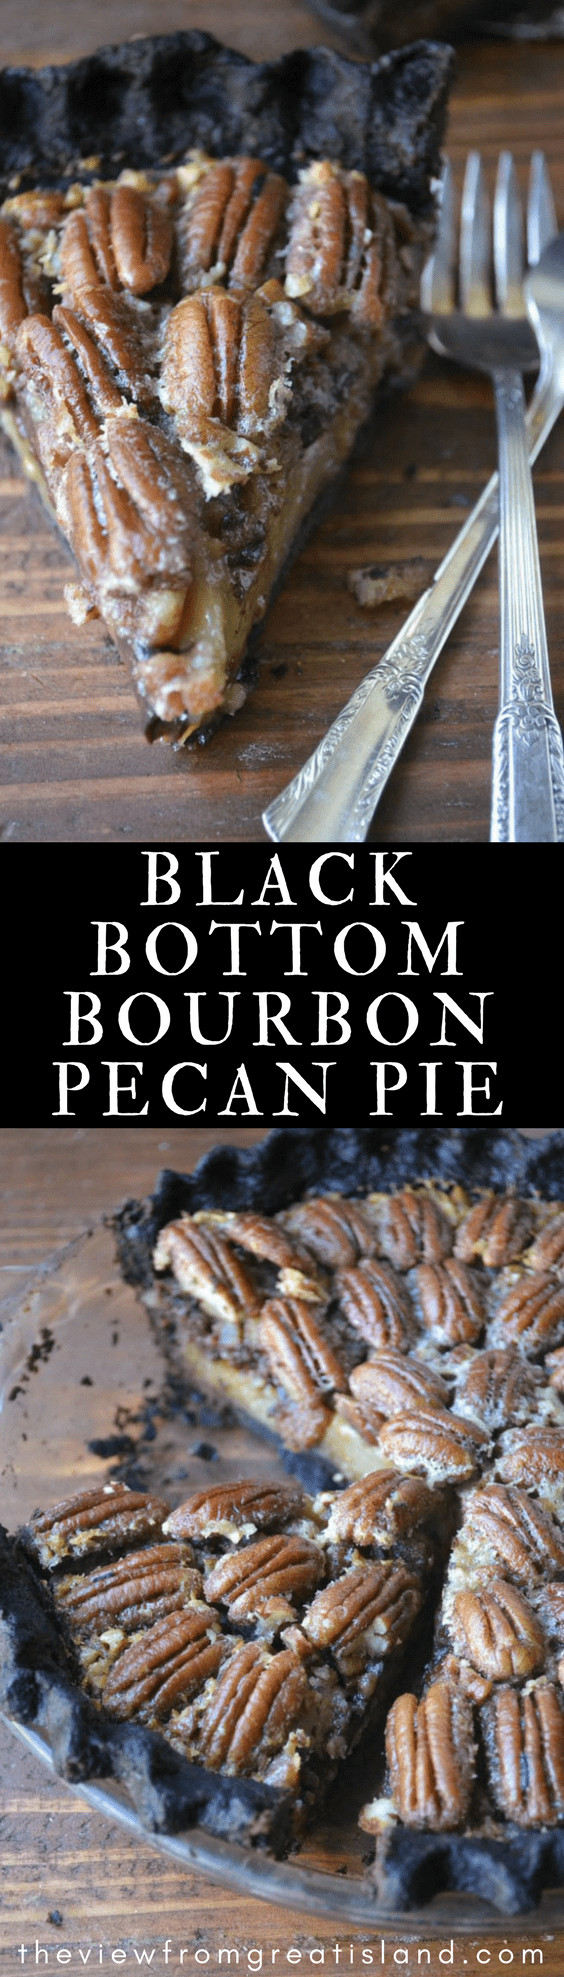 Black Bottom Bourbon Pecan Pie ~ bring a little drama to the table with this chocolate crusted (and spiked) pecan pie ~ it's guaranteed to turn heads! #dessert #pie #pecanpie #chocolatepiecrust #blackbottom #chocolatepecanpie #bestpecanpie #gorgeous #Thanksgiving #Thanksgivingdessert #Christmas #fall #pecans